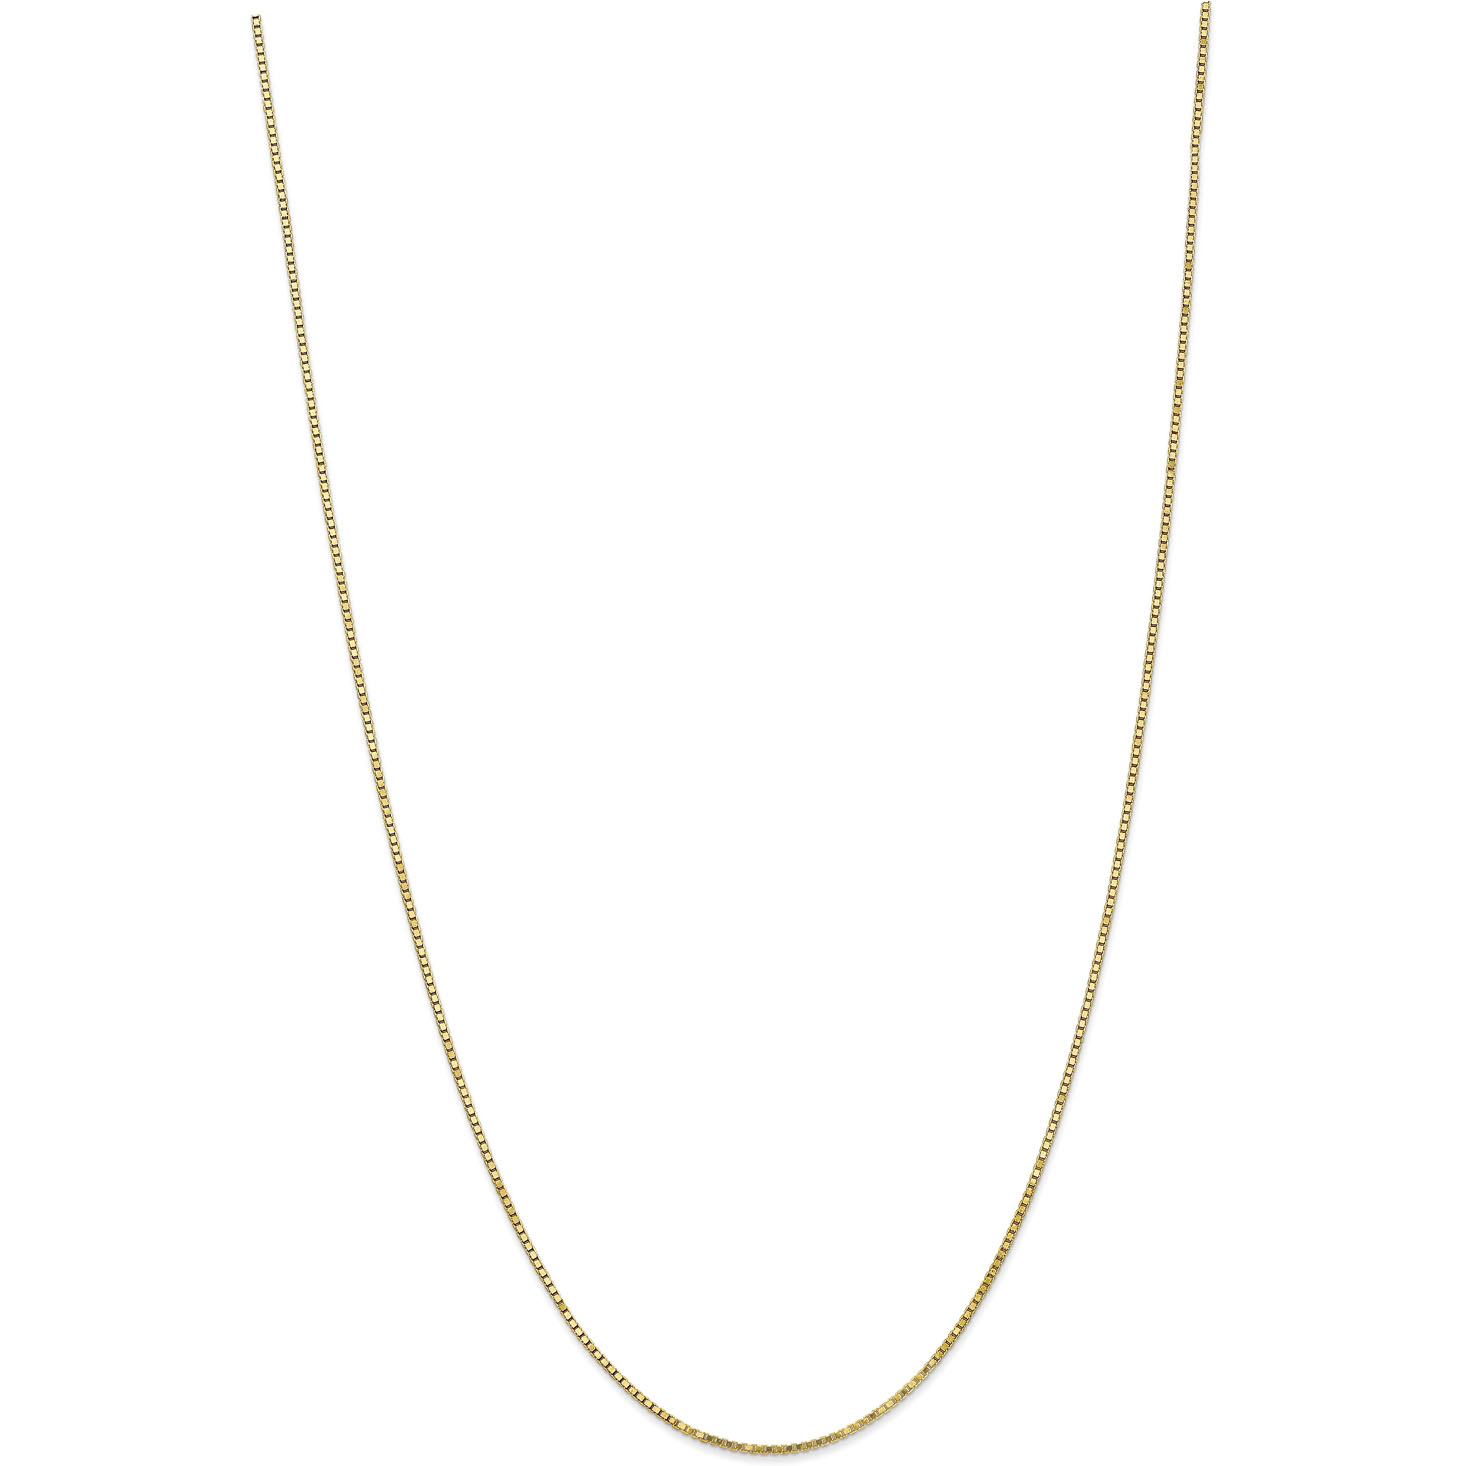 Lex /& Lu 14k White Gold 1.30mm Machine-made Rope Chain Necklace or Bracelet